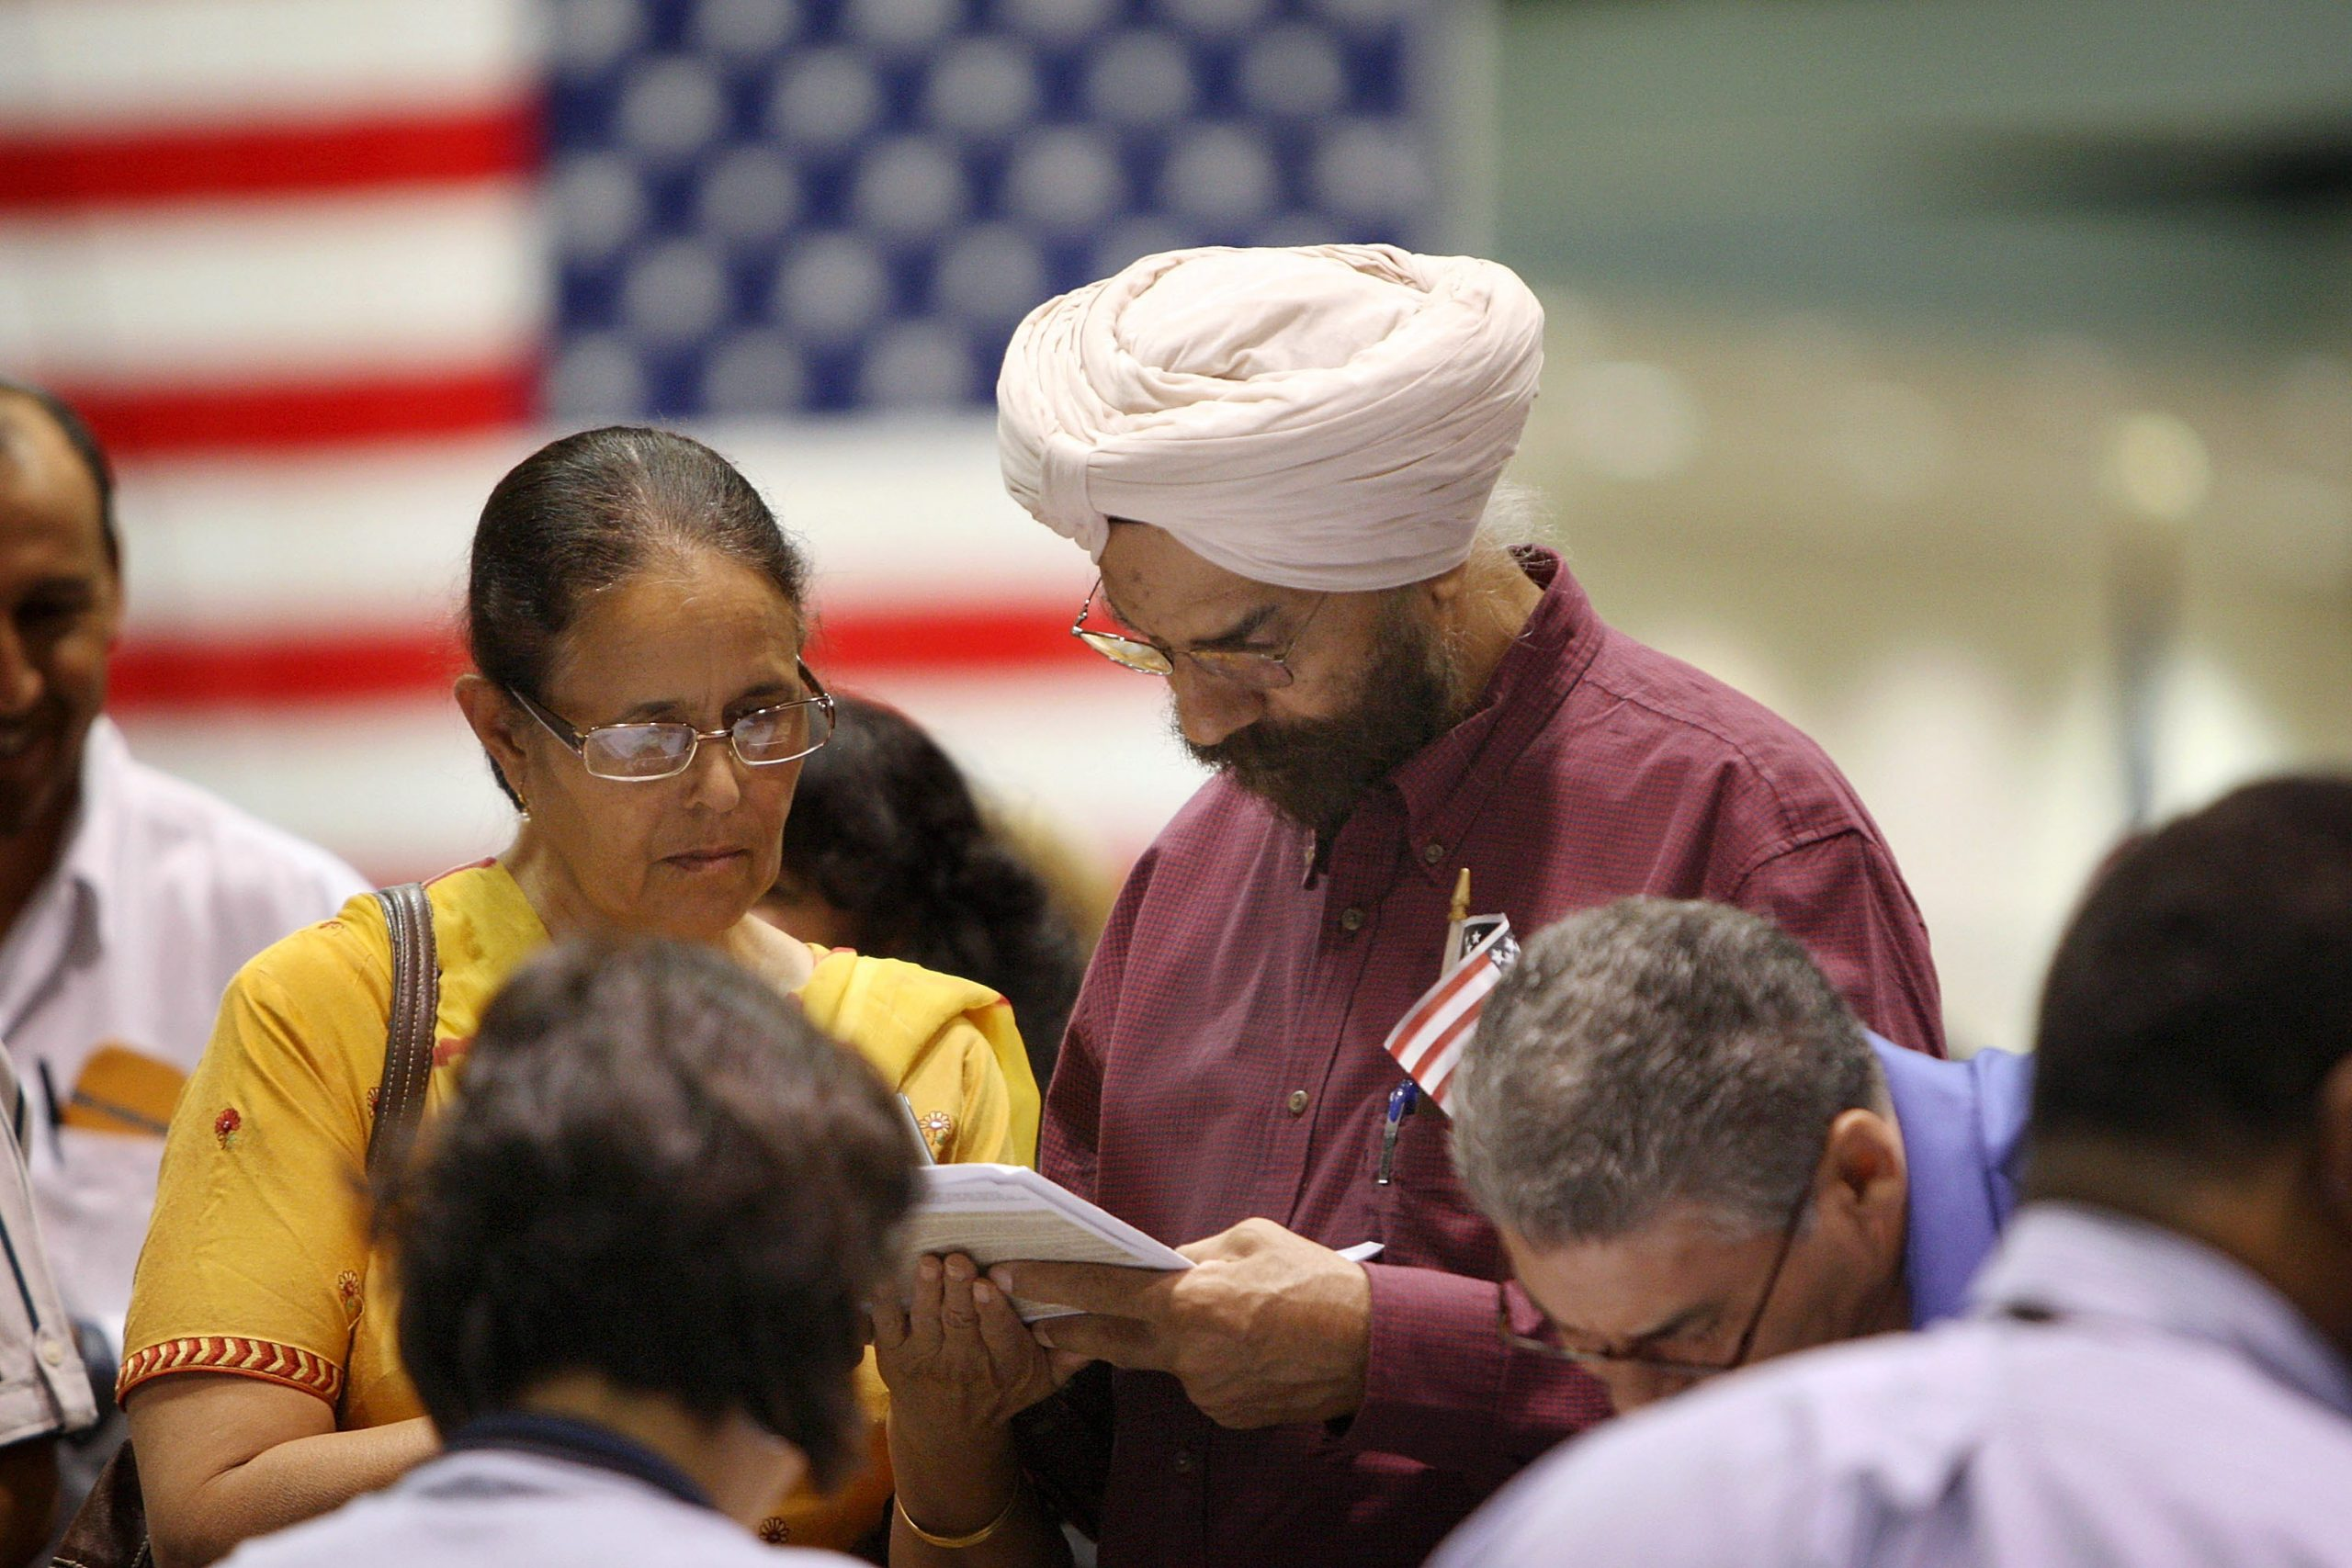 LOS ANGELES, CA - AUGUST 28:  Amrik Sidhu (R) and his wife Harjinder Sidhu, both Sikhs from India, apply for their passports after gaining US citizenship as 18,418 people are sworn in as US citizens during naturalization ceremonies at the Los Angeles Convention Center on August 28, 2008 in Los Angeles, California. Immigrants, especially Latinos, which now make up 15 percent of the US population, play an increasingly important role in US politics. Democratic presidential candidate Barack Obama (D-IL), who could benefit from a strong Hispanic following of former presidential hopeful Sen. Hillary Clinton (D-NY), who now campaigns for him, has set aside $20 million for Latino outreach. Republican rival John McCain has also stepped up efforts to attract Latinos, focusing particularly on those in the military. The US Department of Homeland Security reports that citizenship applications have jumped by more than 100 percent since 2006, a surge in naturalization that is expected to add to the 17 million existing eligible Latino voters nationwide and lead to an anticipated record of 9.2 million Latinos voting in the November presidential election. Issues of interest to Latinos include the slumping economy, employment, health care, housing, and immigration reform.  (Photo by David McNew/Getty Images)